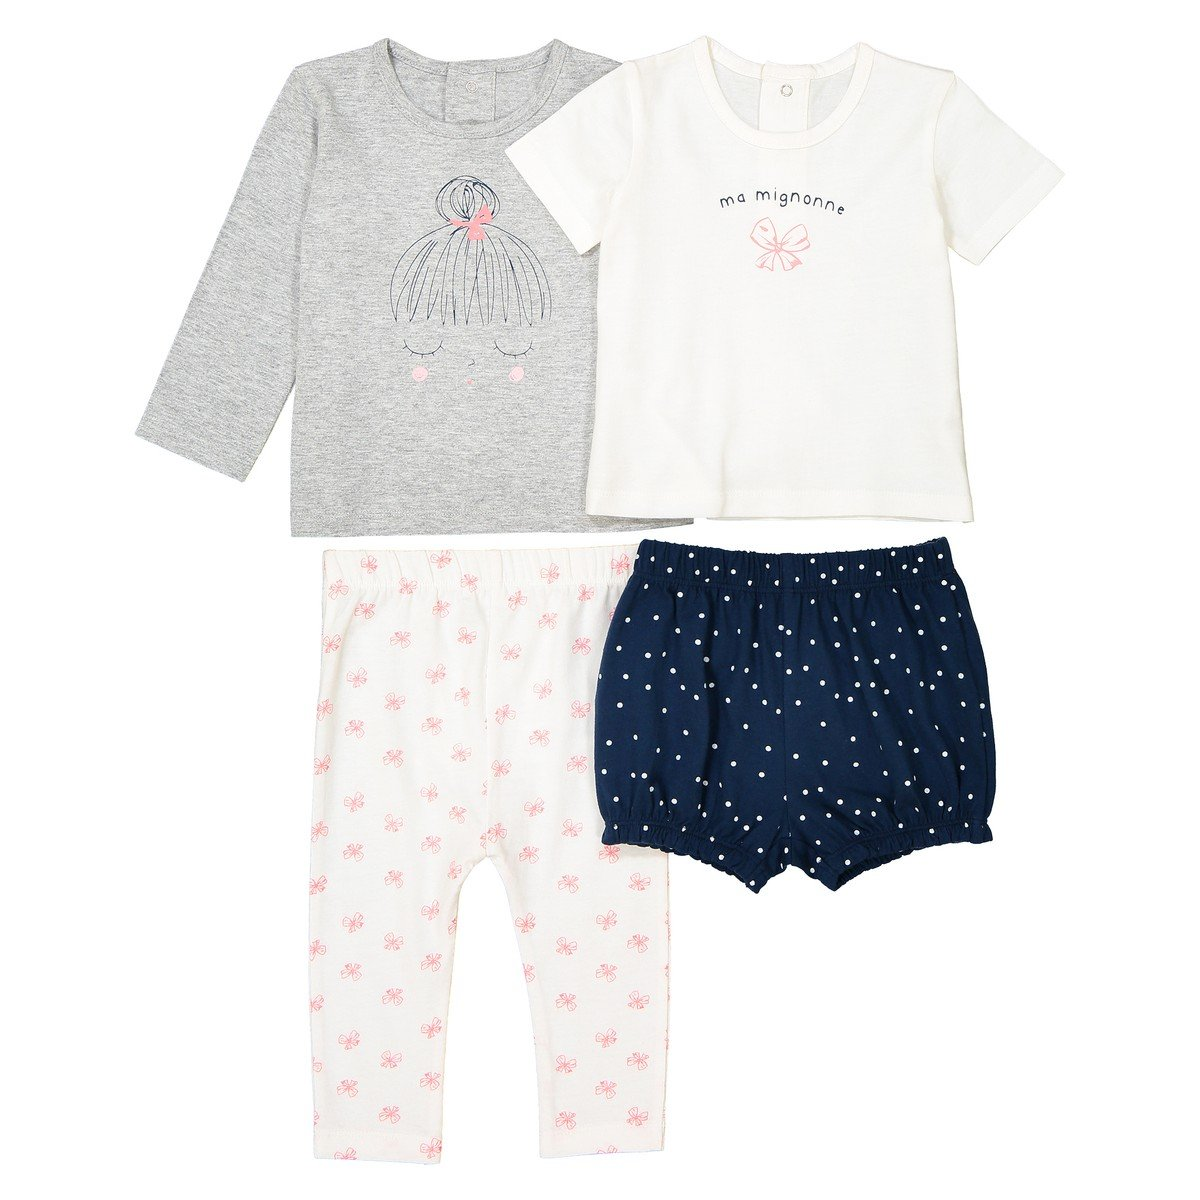 La Redoute Collections Big Girls Pack Of 2 Printed Cotton Pyjamas, Birth-3 Years Blue Size 6 Months - 26 In.